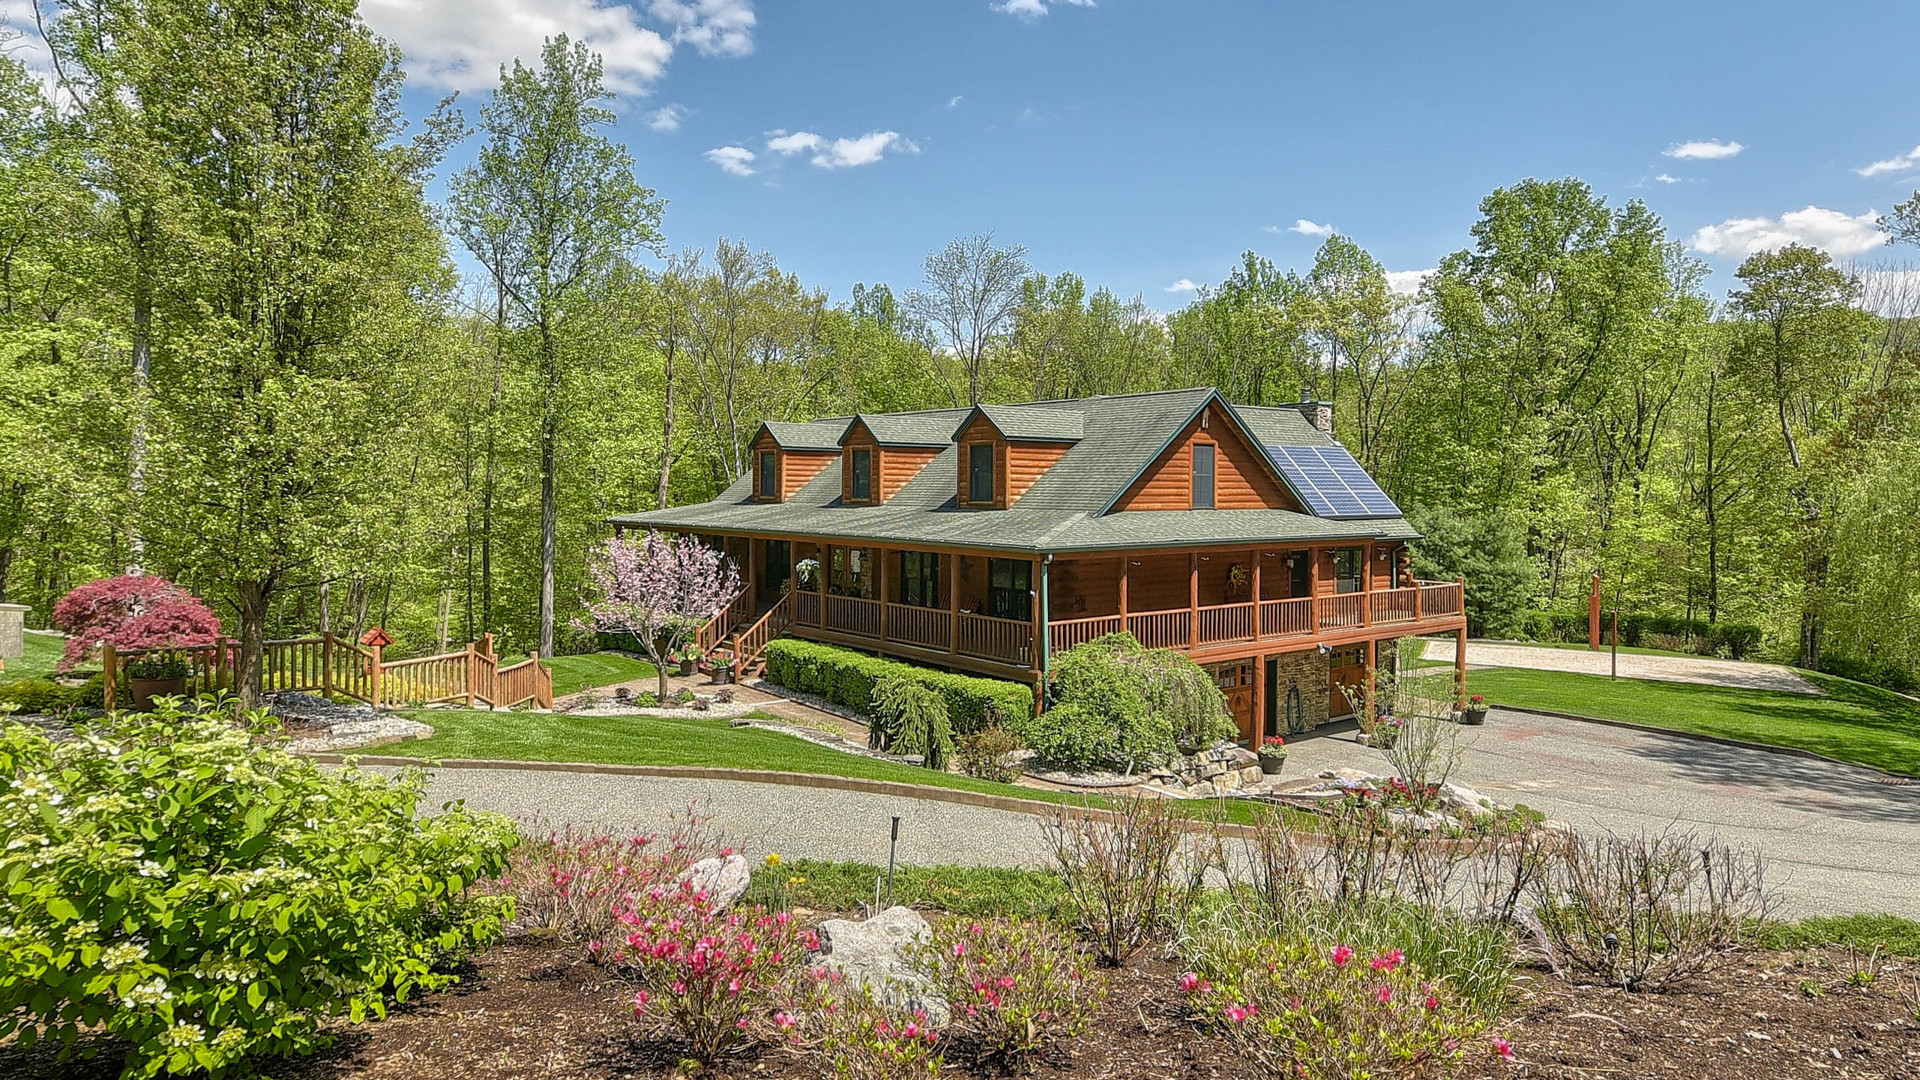 9 Mary Hill, Ringwood  Listed for $800,000  Live every day like a lavish spa getaway! Set upon 3.57 majestic acres, this breathtaking custom home is truly one of a kind.